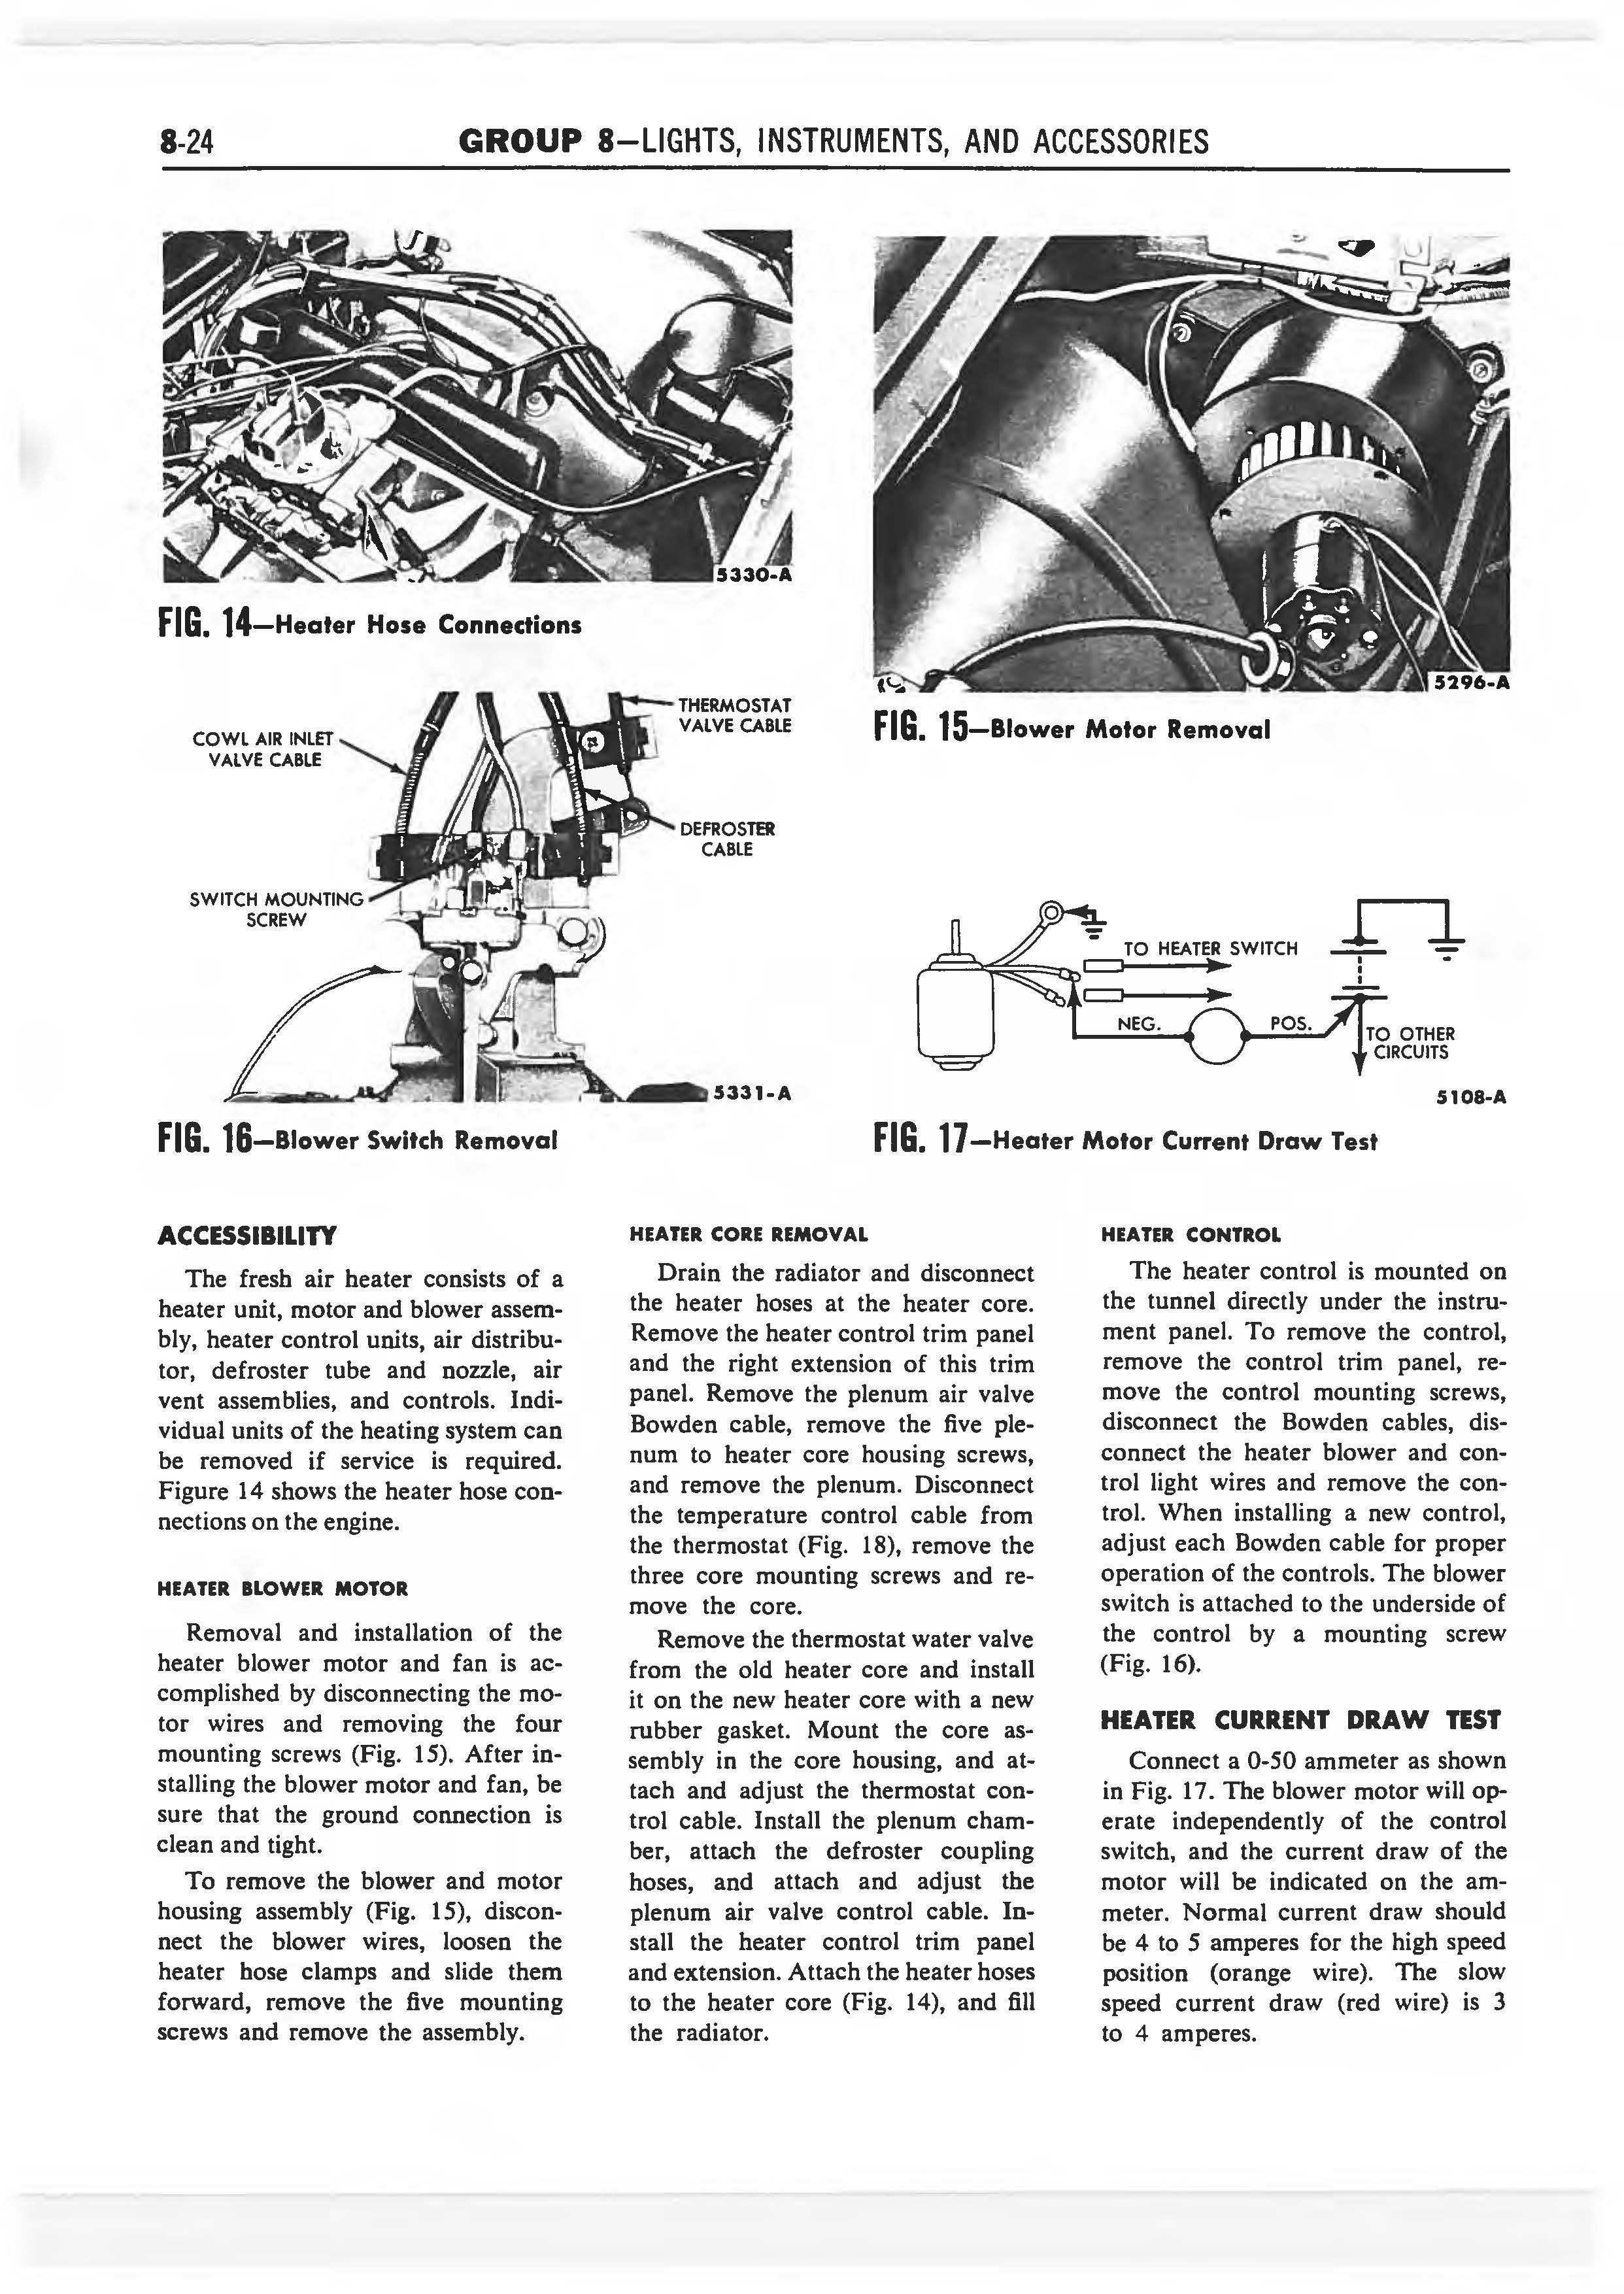 1958 Ford Thunderbird Shop Manual page 289 of 360